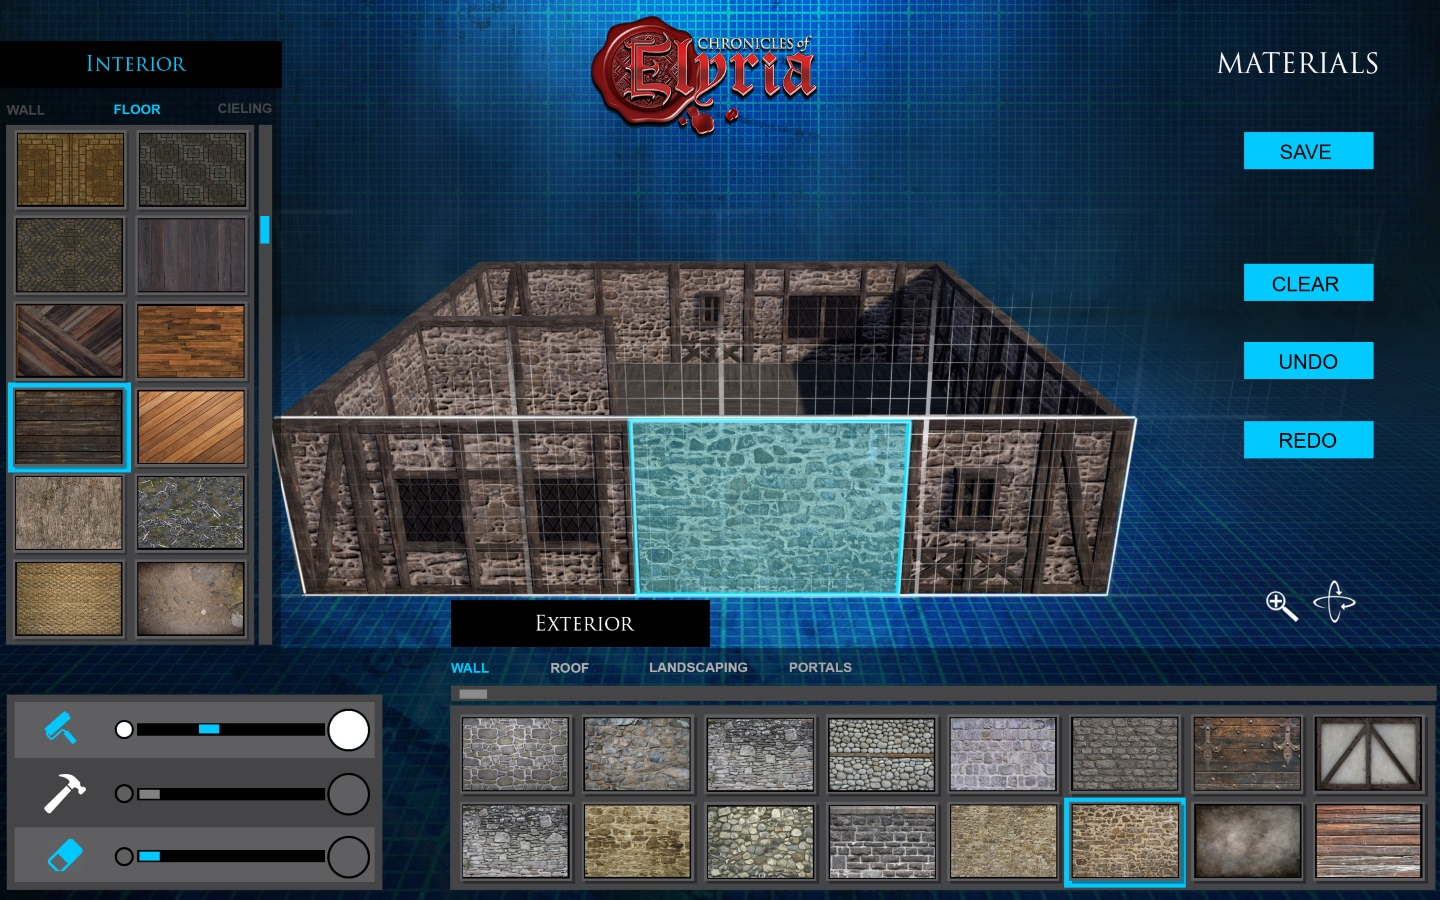 In-game screenshot showing the material architectural tool